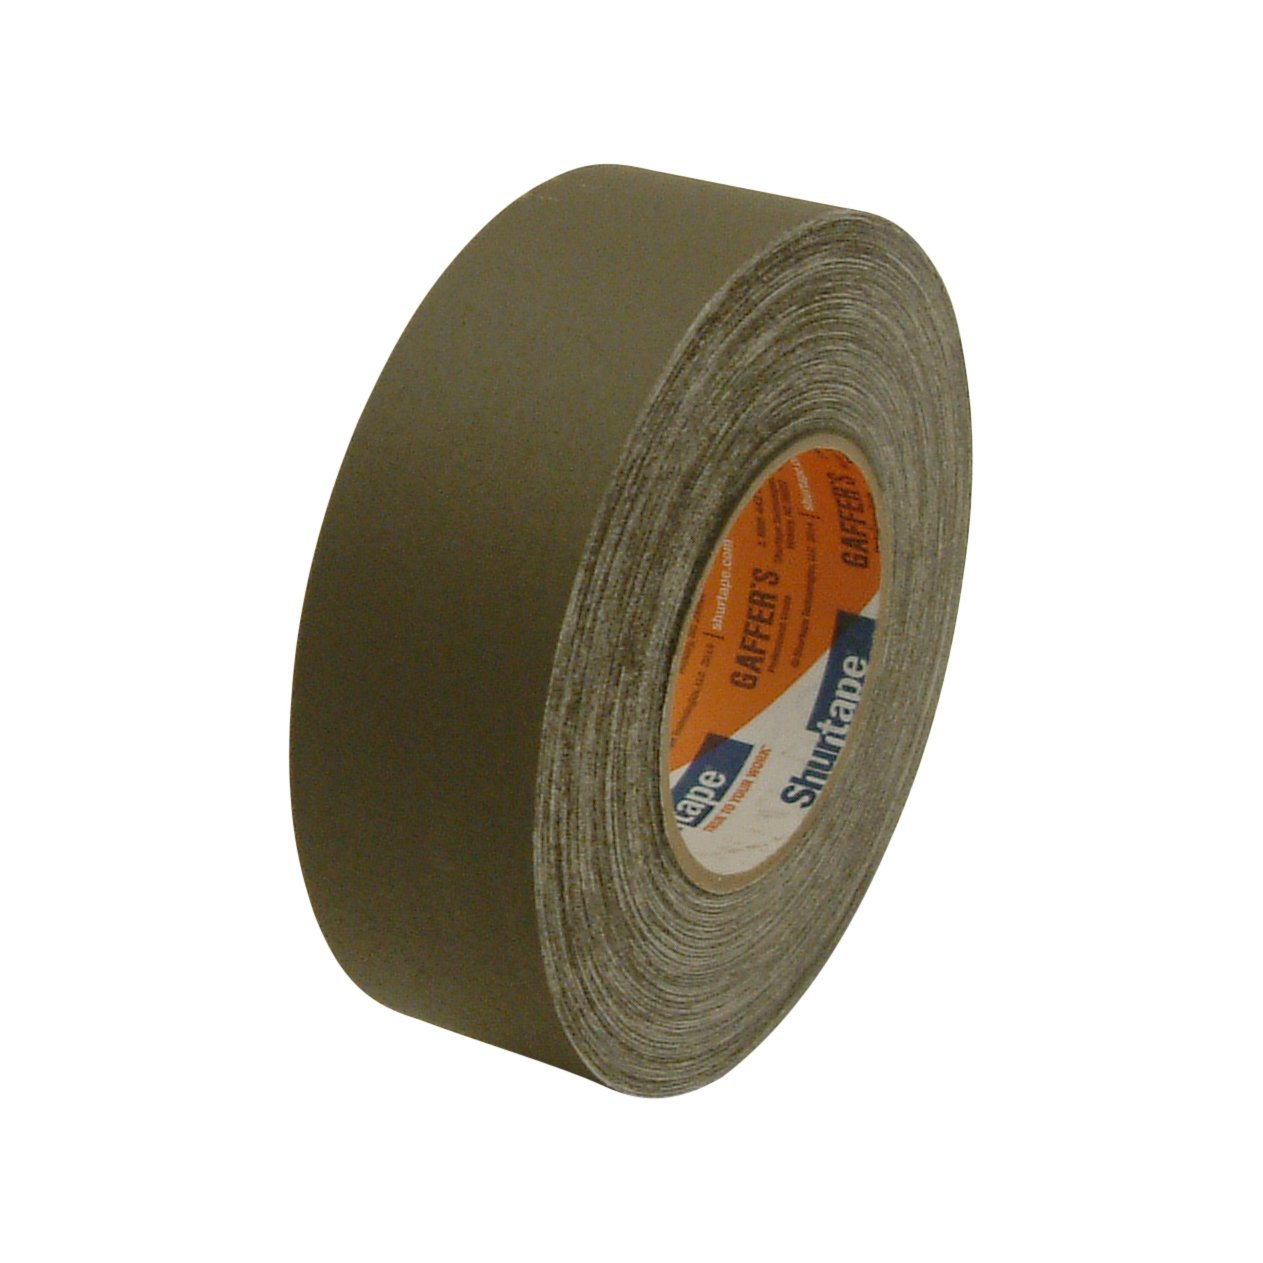 Shurtape P-672/BLK350 P-672 Professional Grade Gaffers Tape: 3'' x 50 yd. by Shurtape (Image #1)